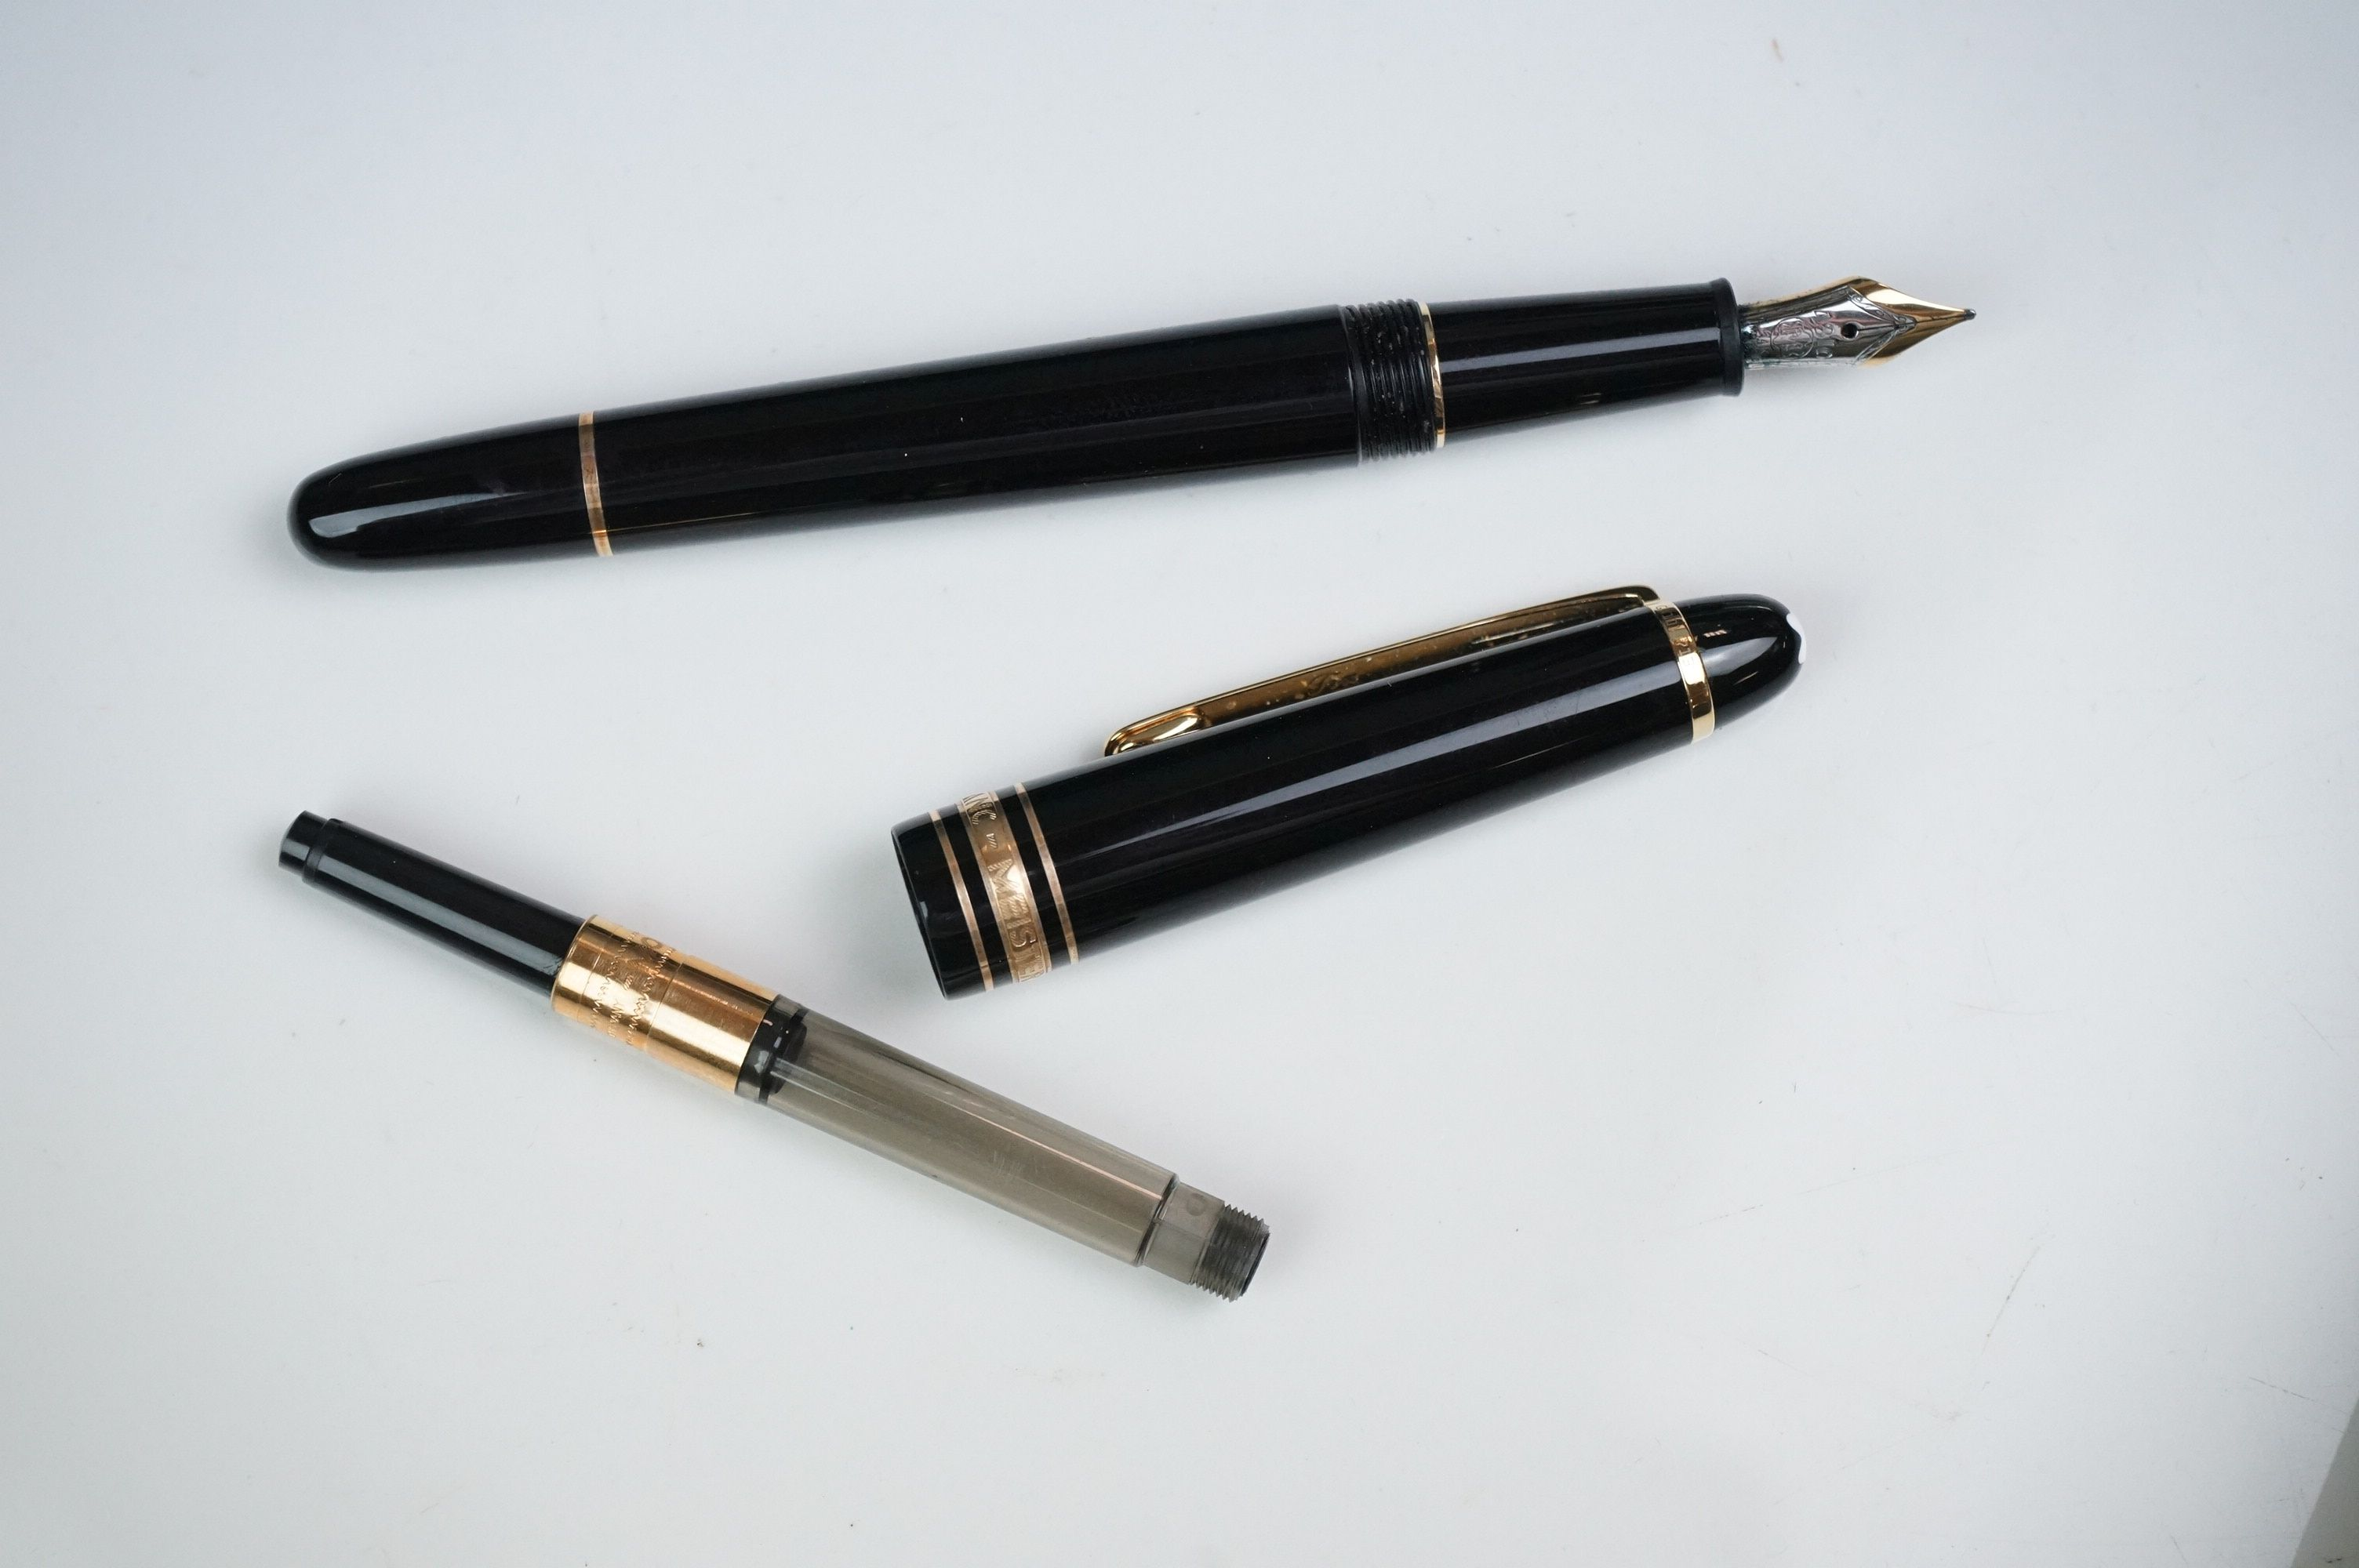 Mont Blanc Meisterstuck Hommage A Frederic Chopin fountain pen, model 145 M, with CD, service